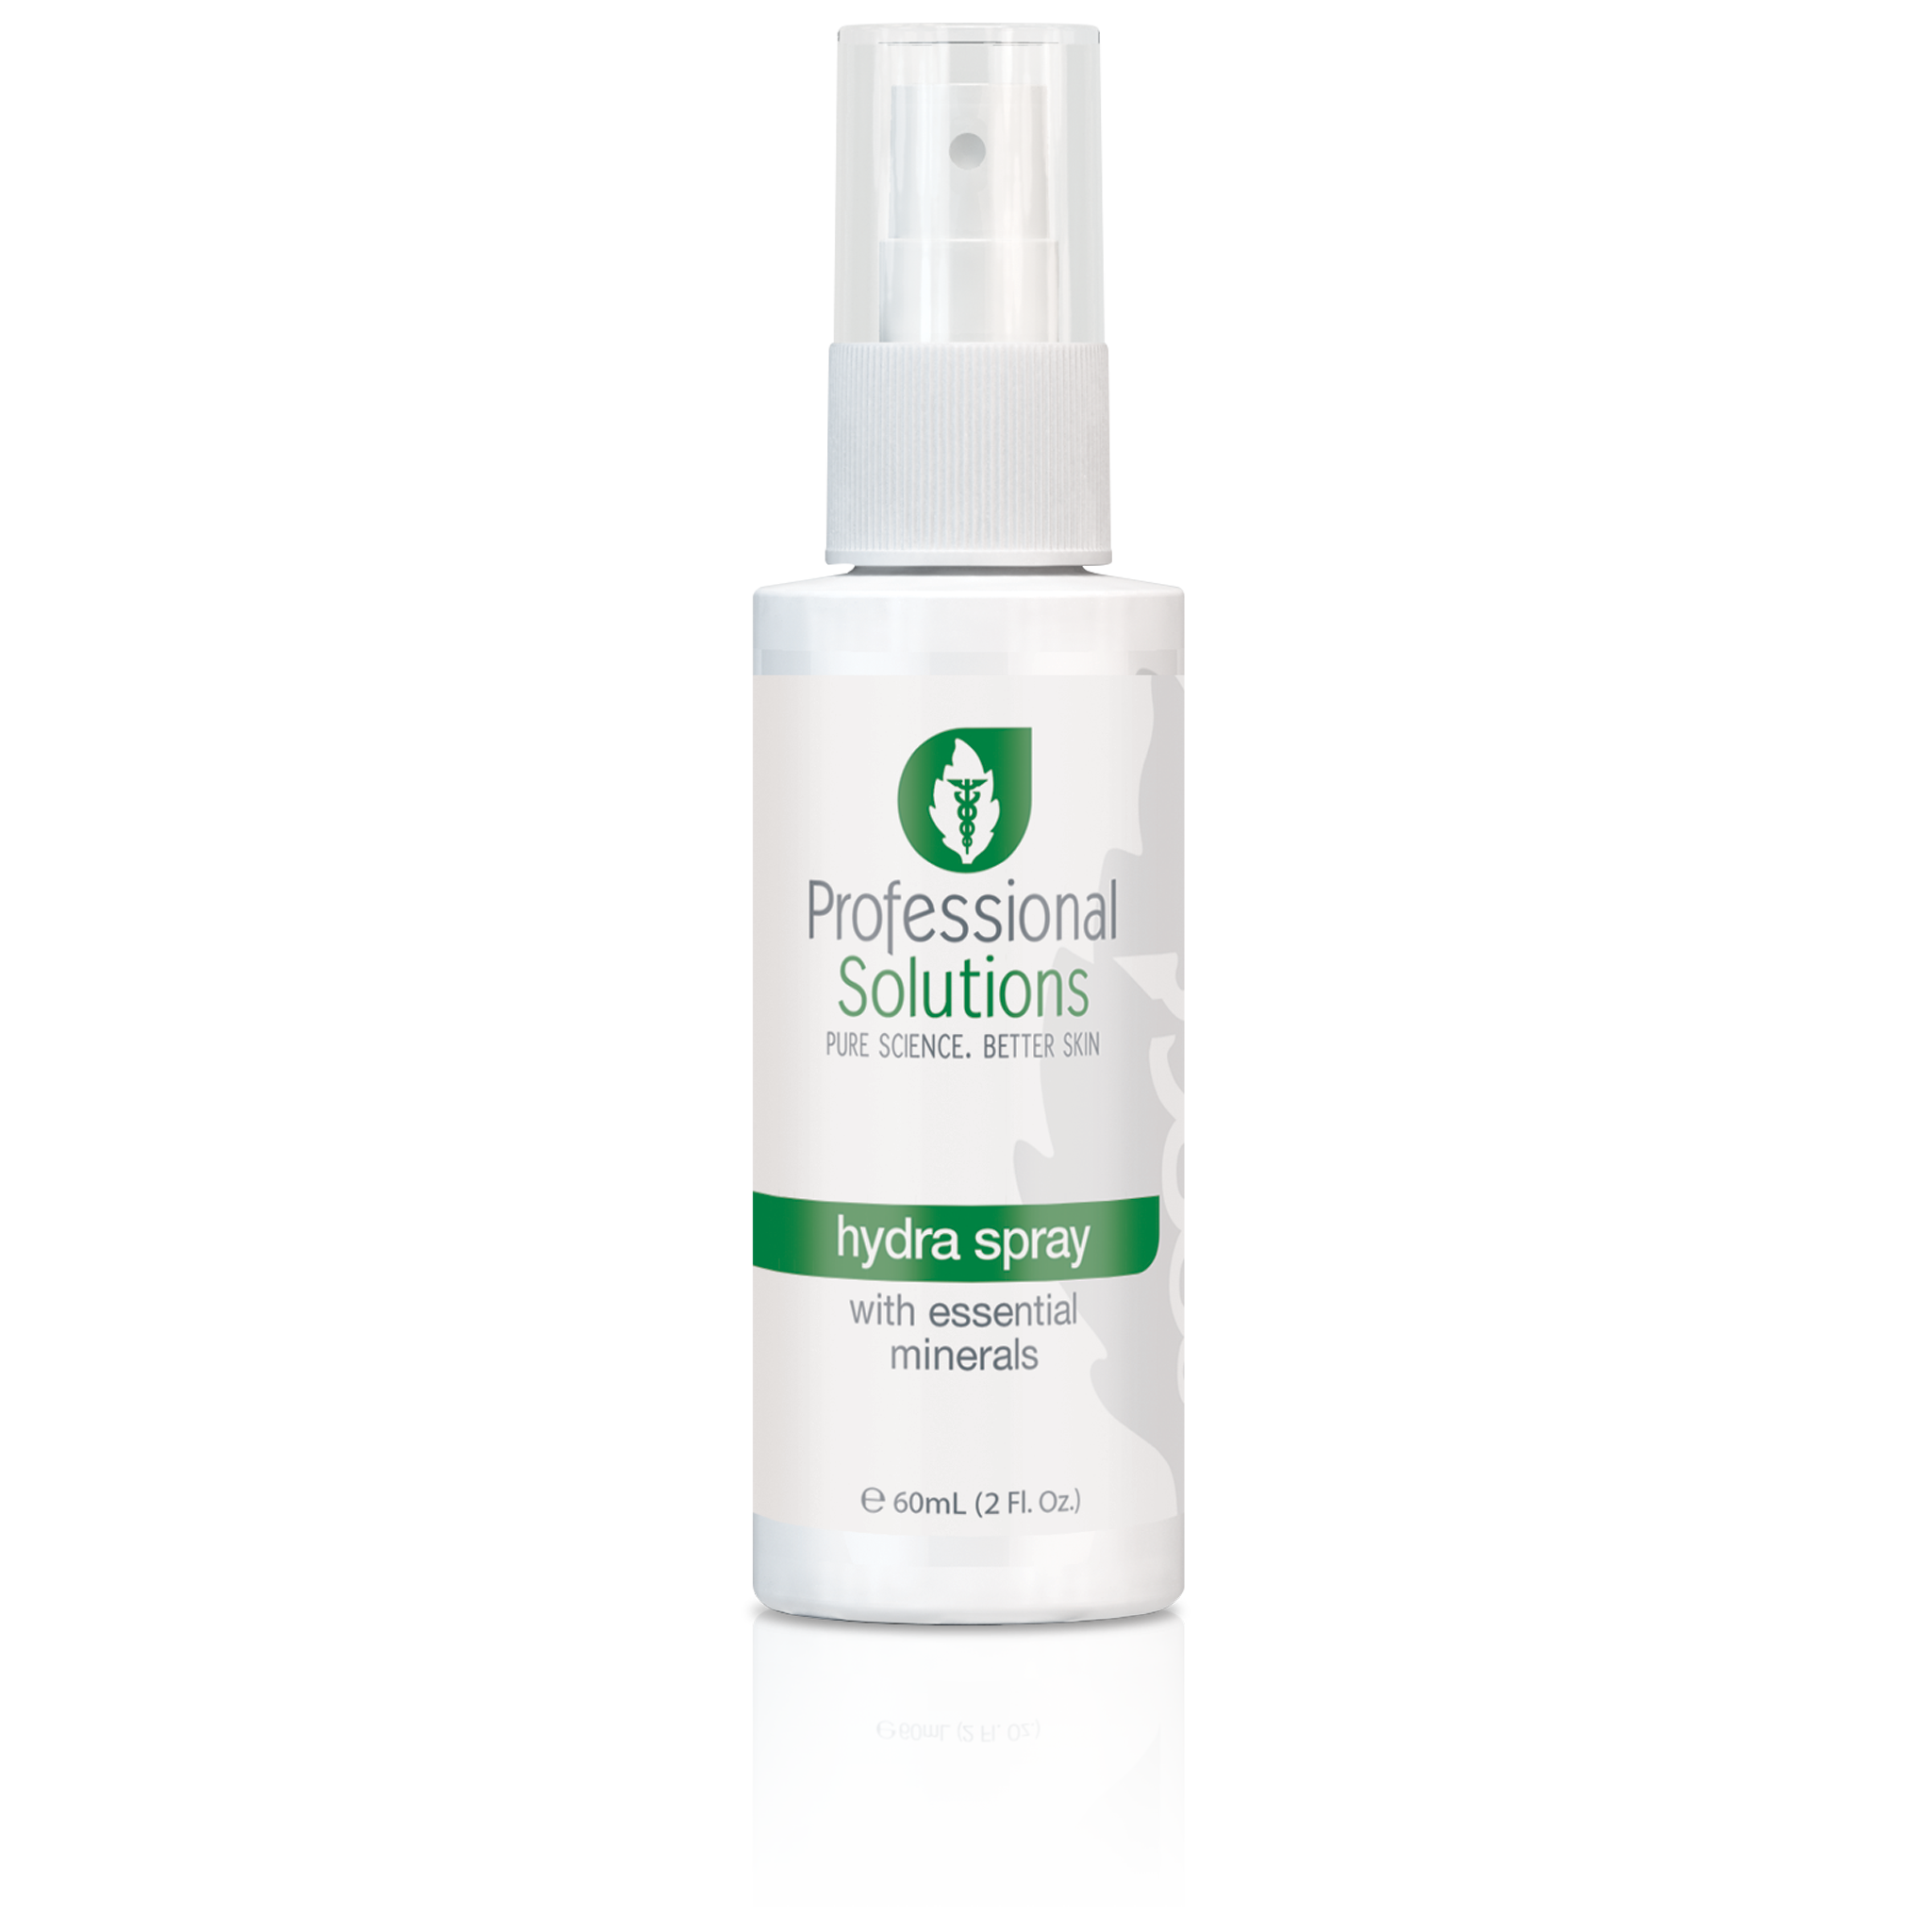 Hydra Spray with Essential Minerals